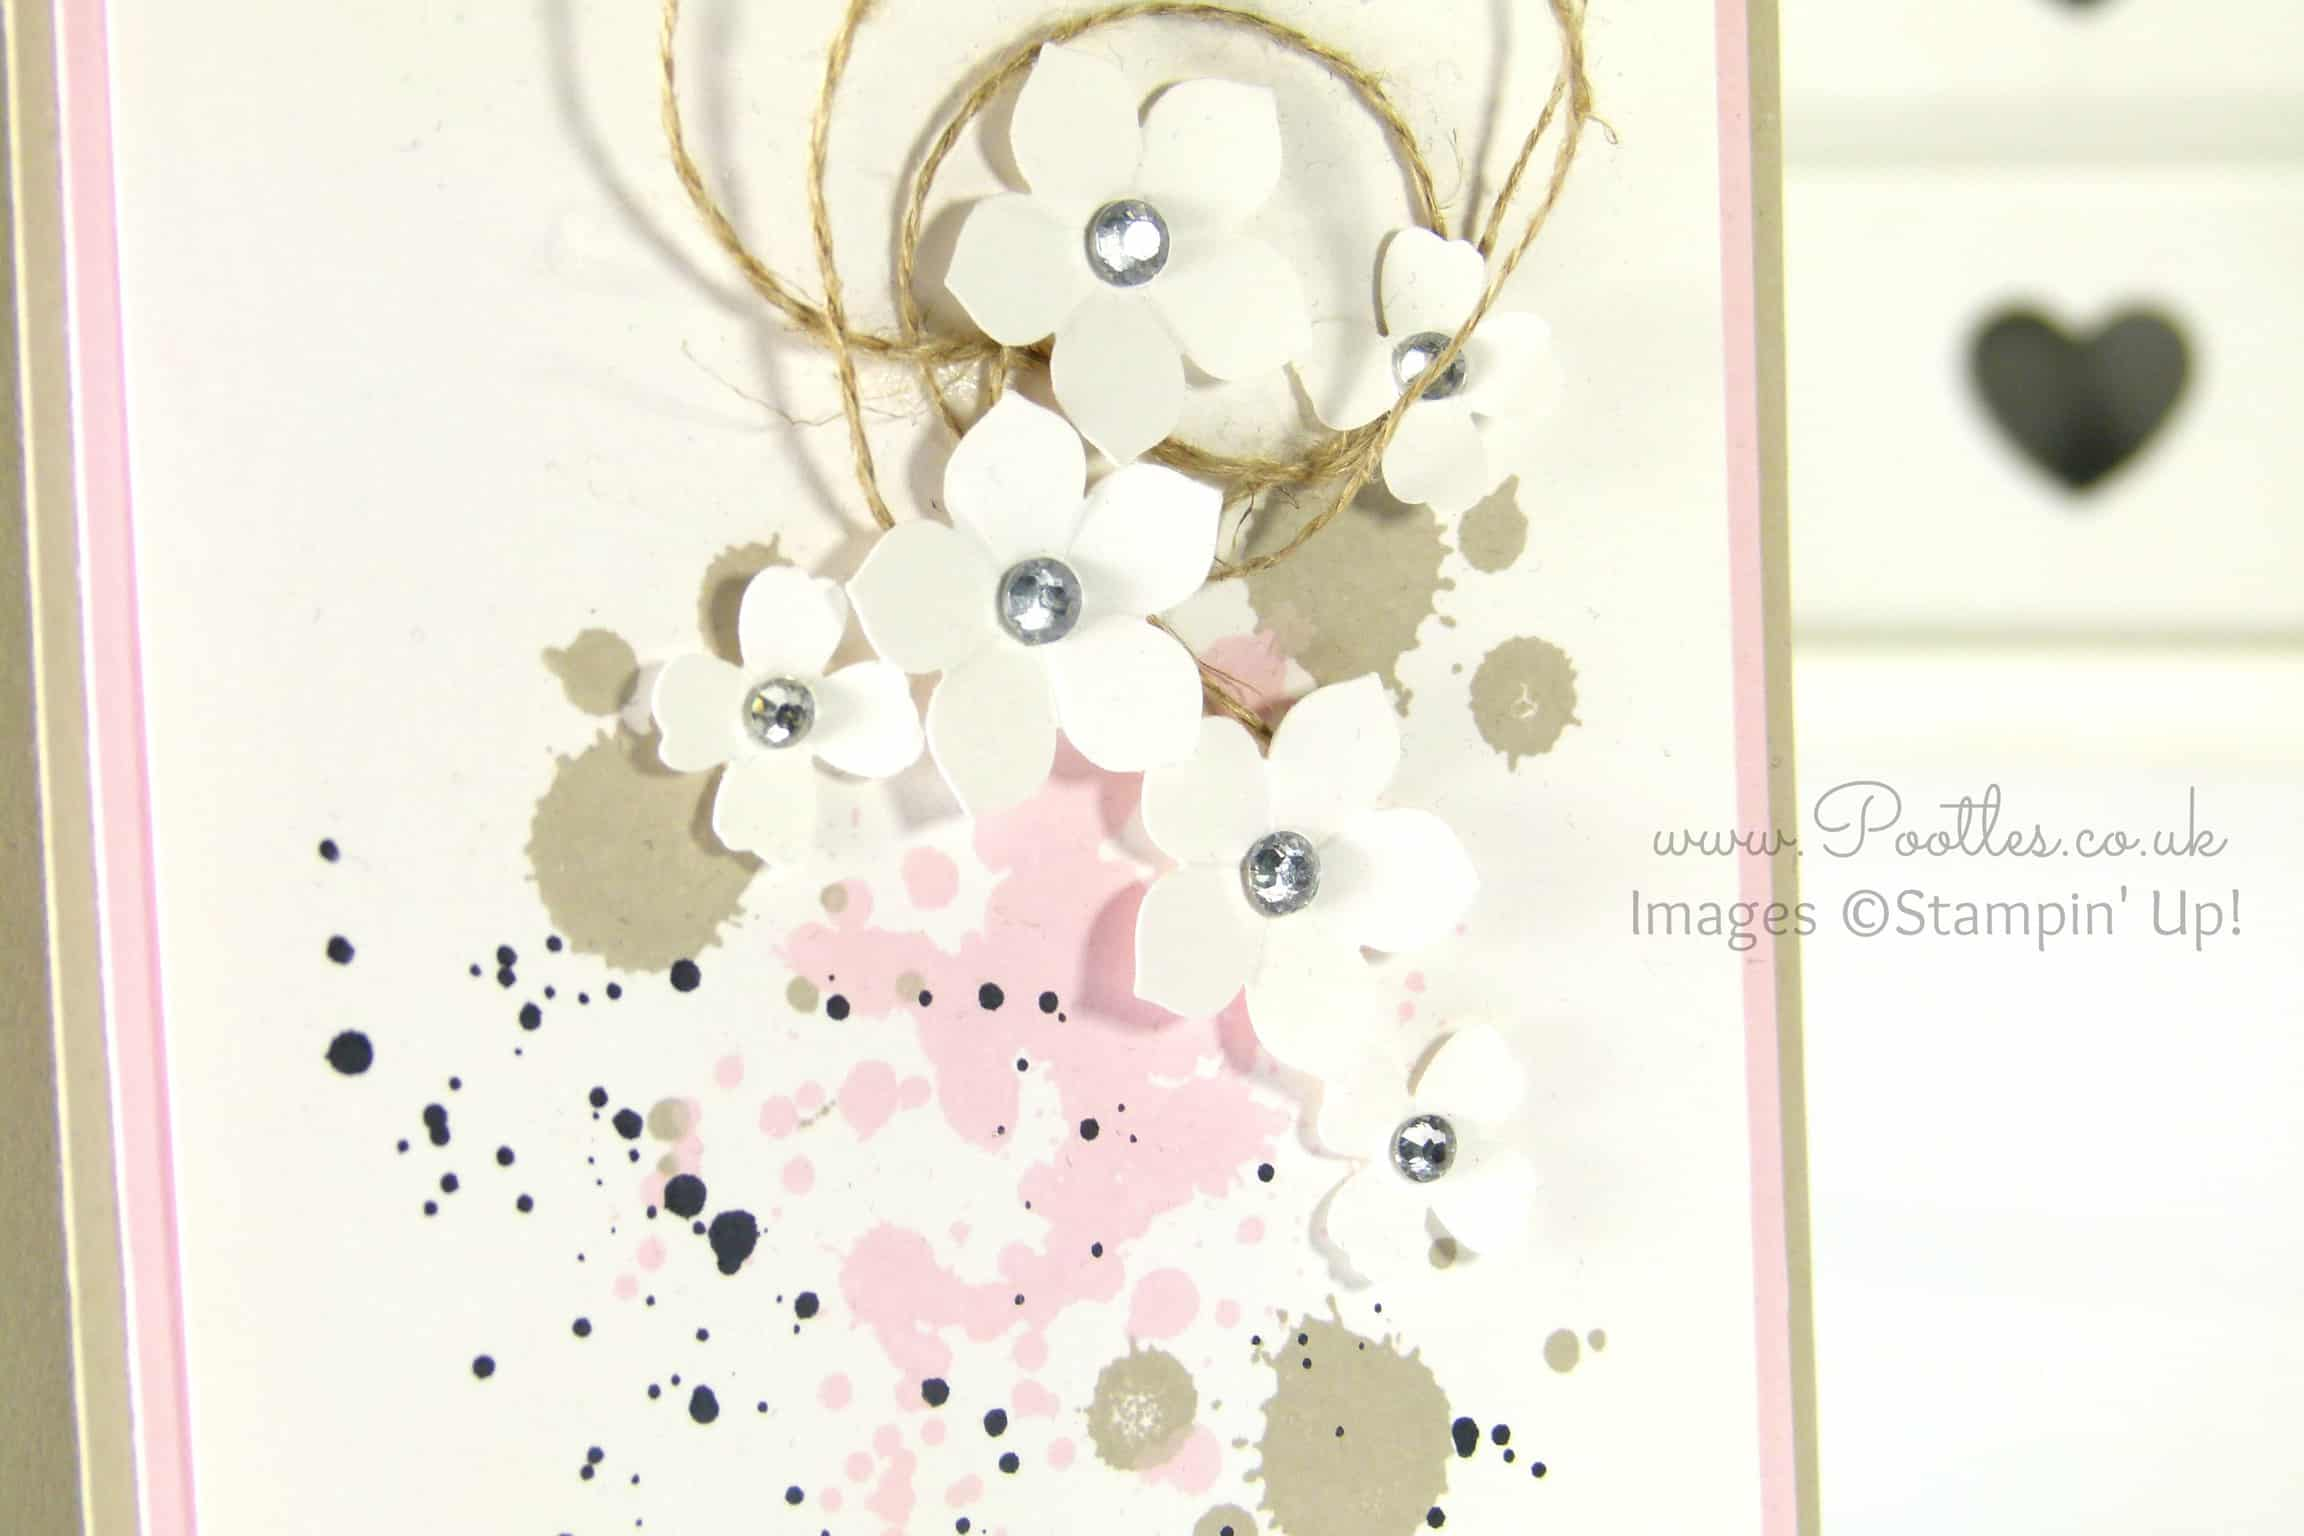 South Hill & Stampin' Up! Sunday Delicate Floral Card Tutorial